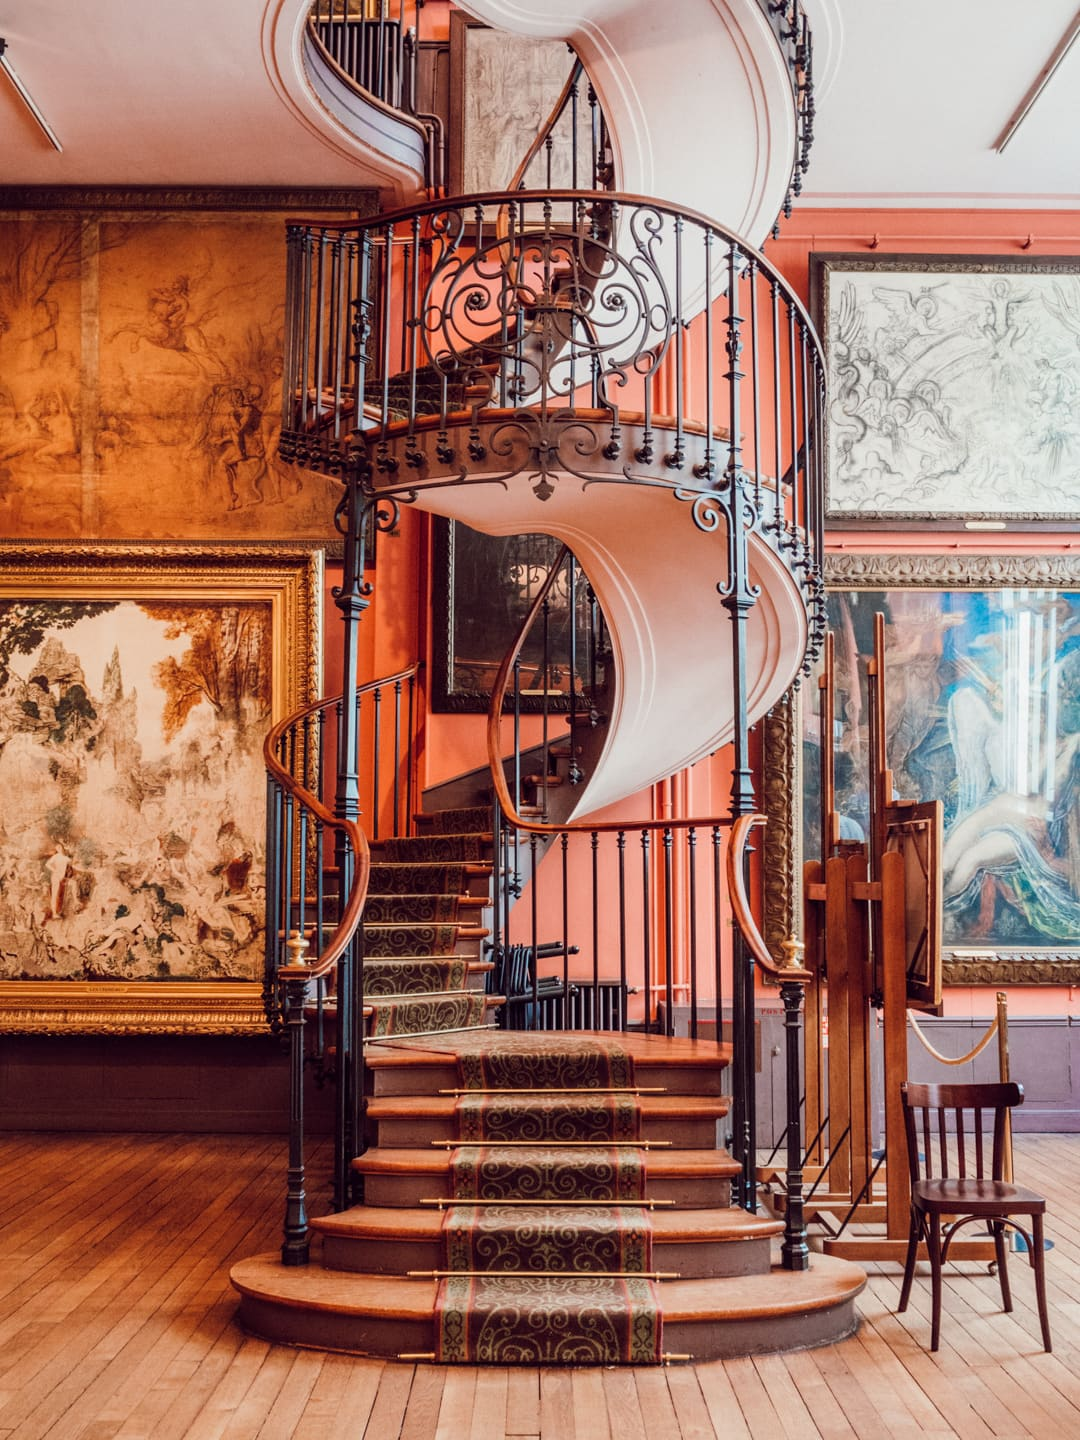 Gustav Moreau museum is part of travel blogger's Off the Beaten Path Paris Guide.